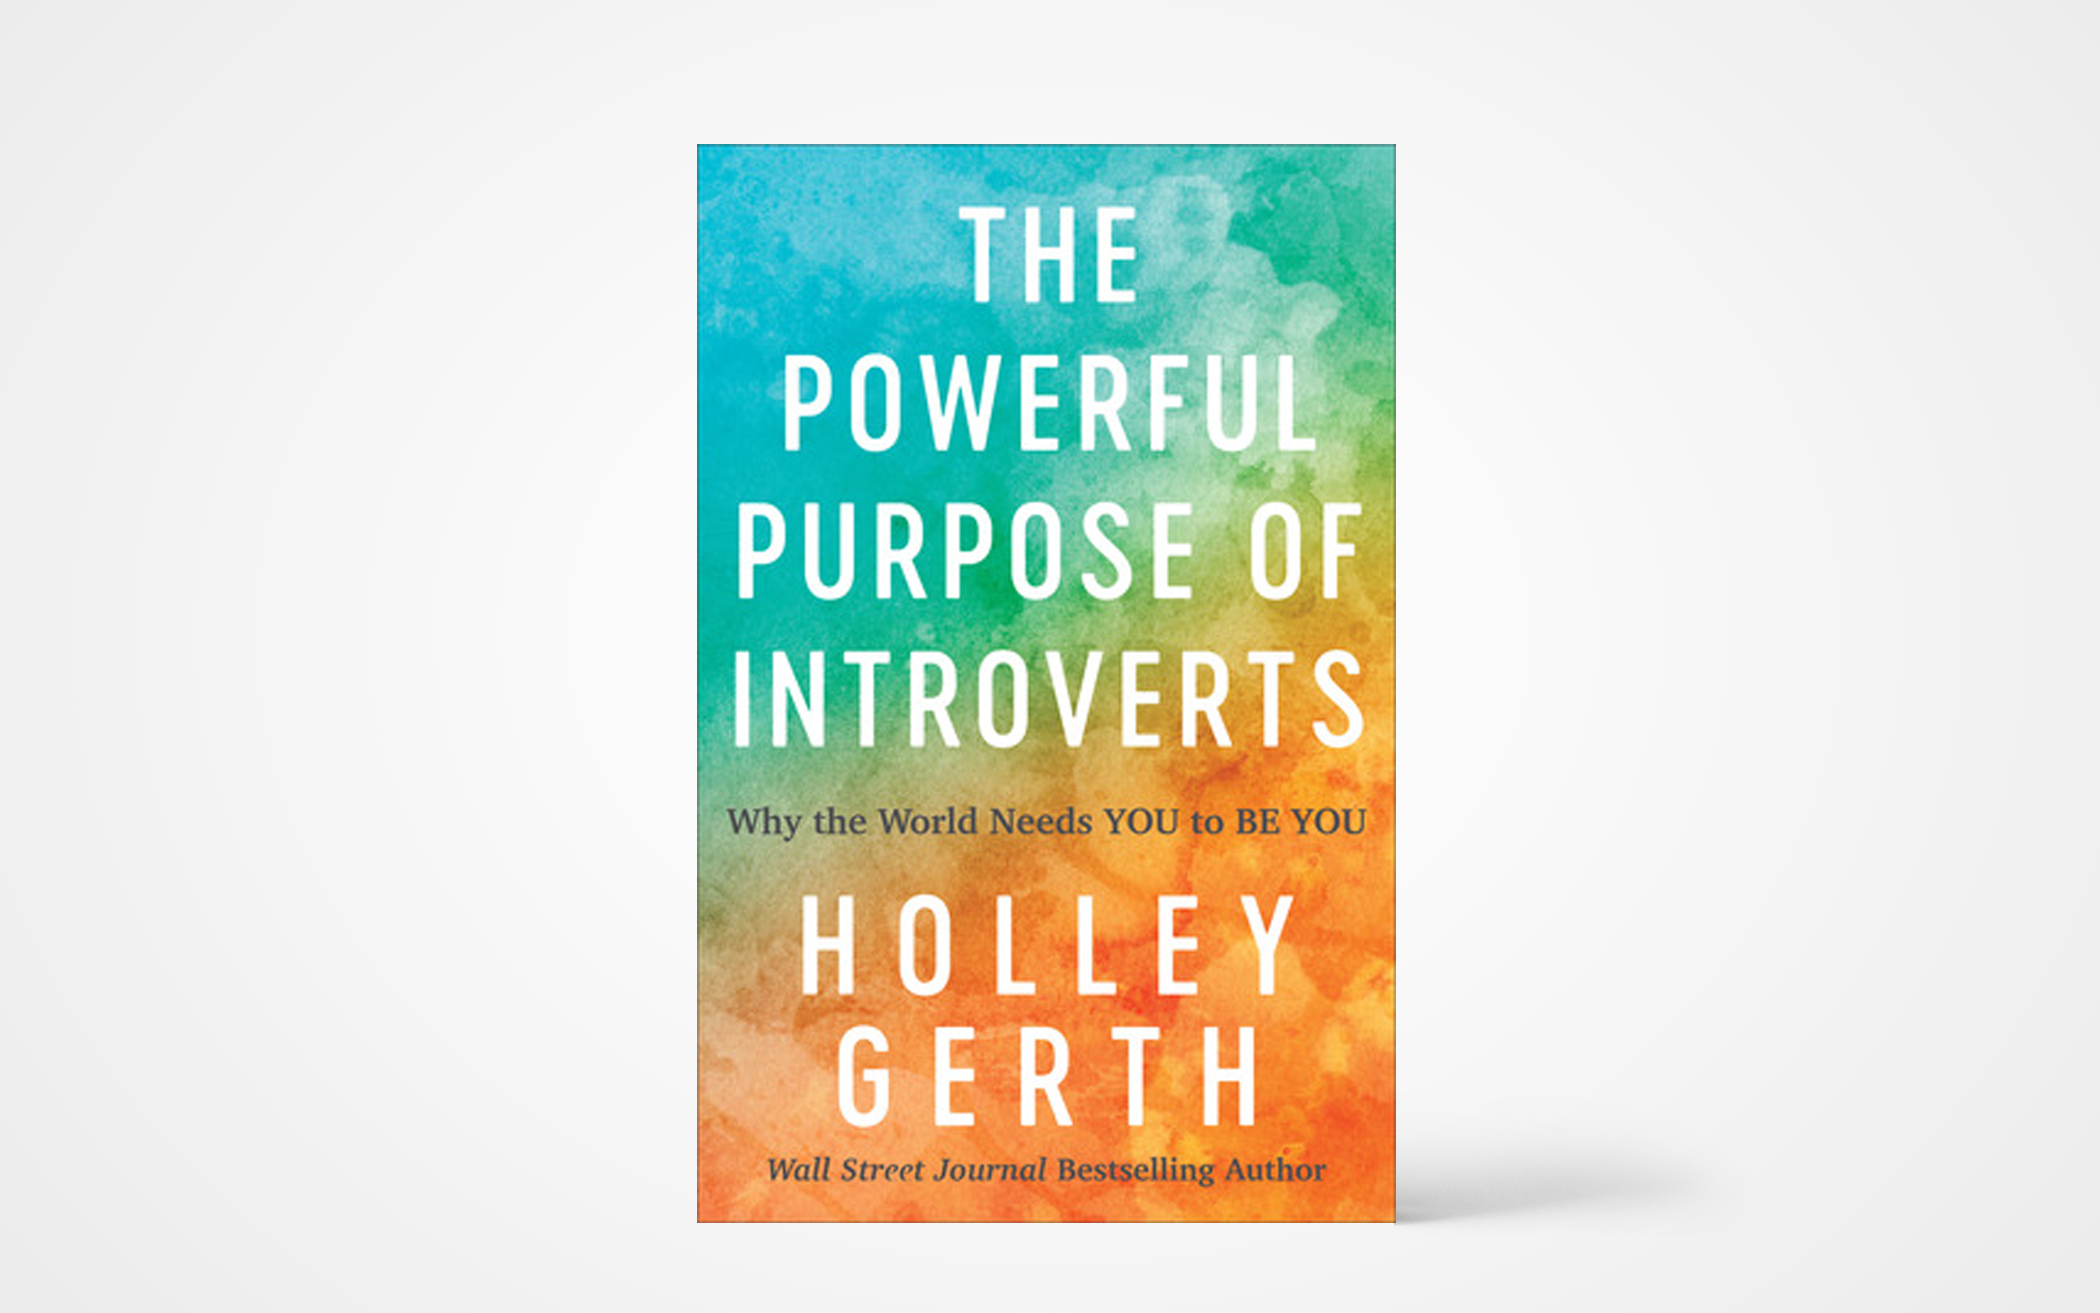 The Powerful Purpose of Introverts